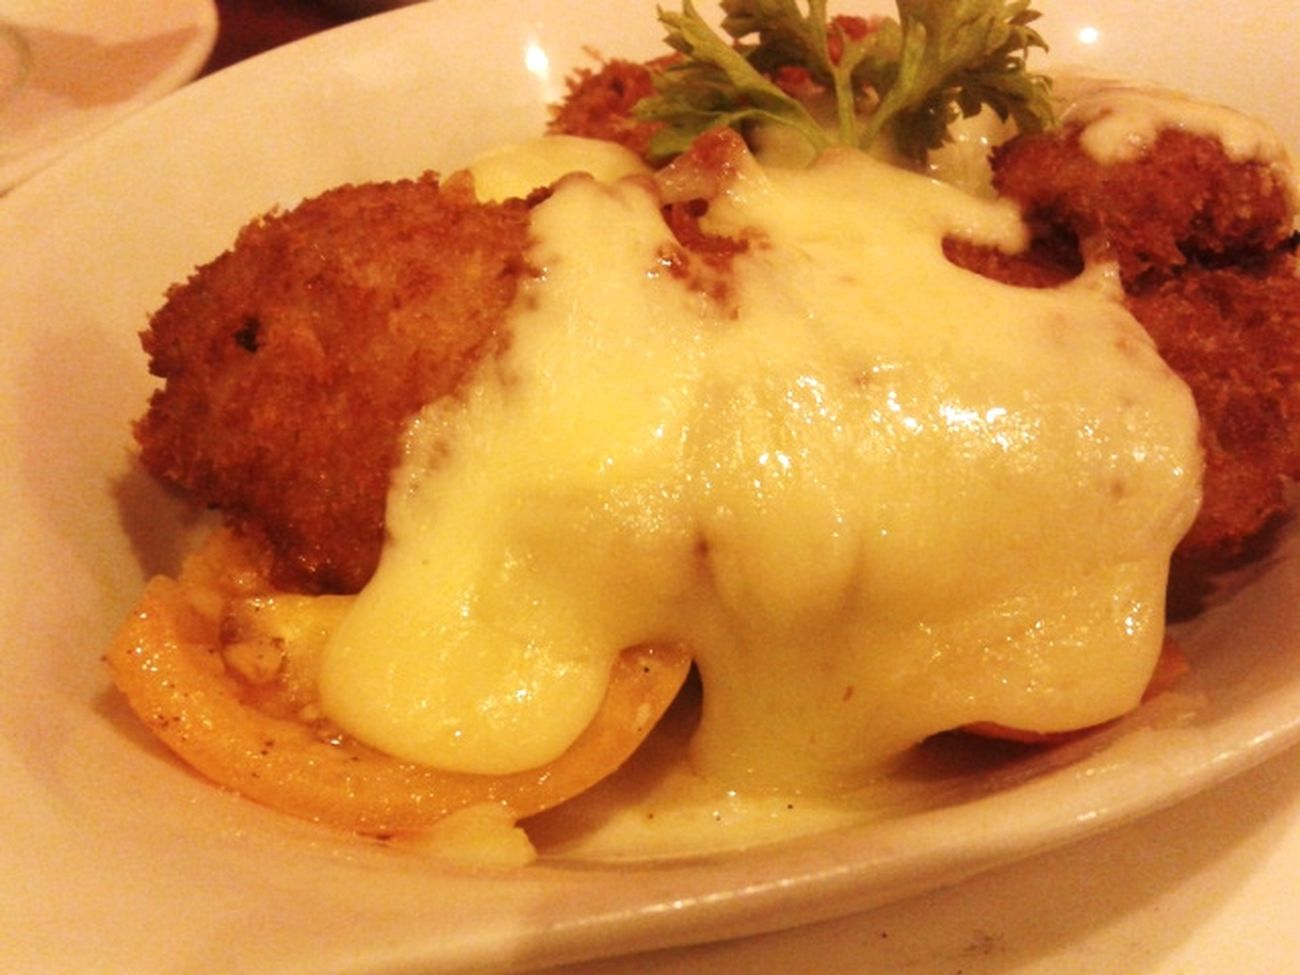 Chickenfillet with Mozzarella